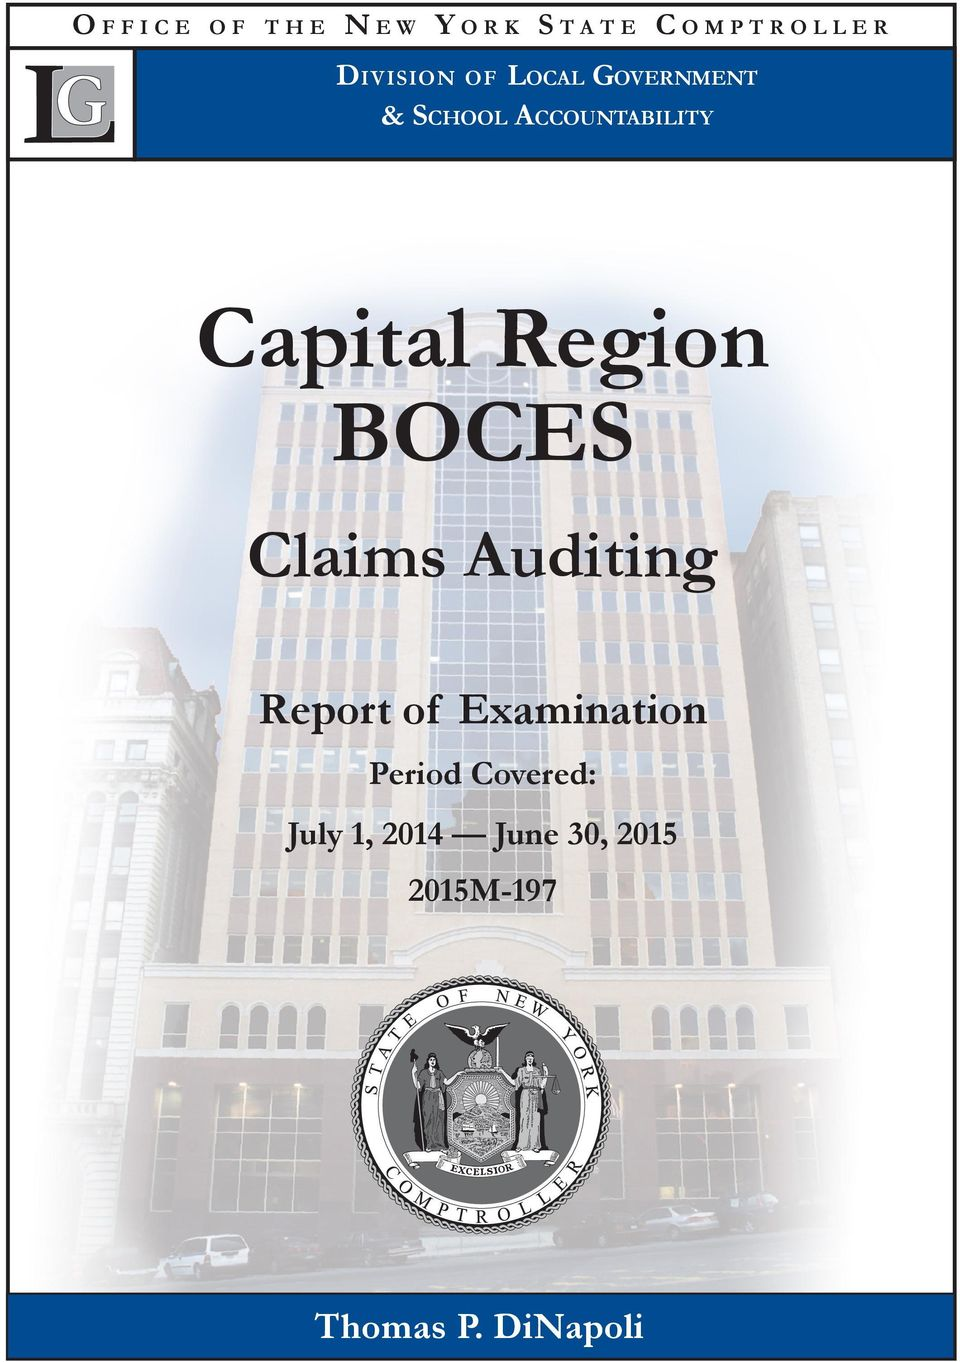 Capital Region BOCES Claims Auditing Report of Examination